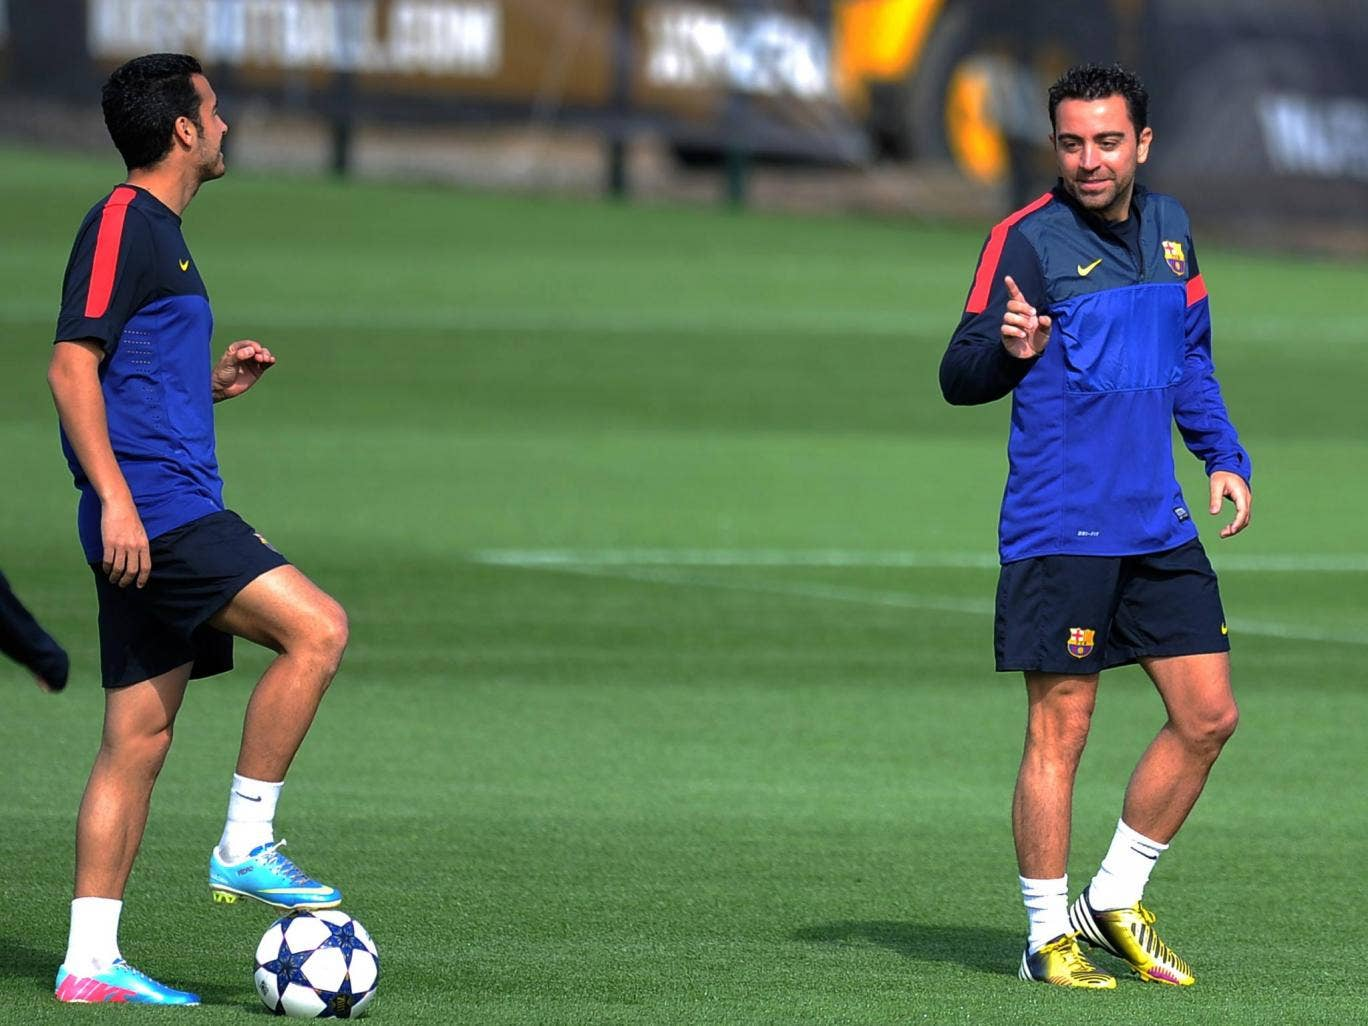 Barcelona midfielder Xavi pictured ahead of the tie with Bayern Munich